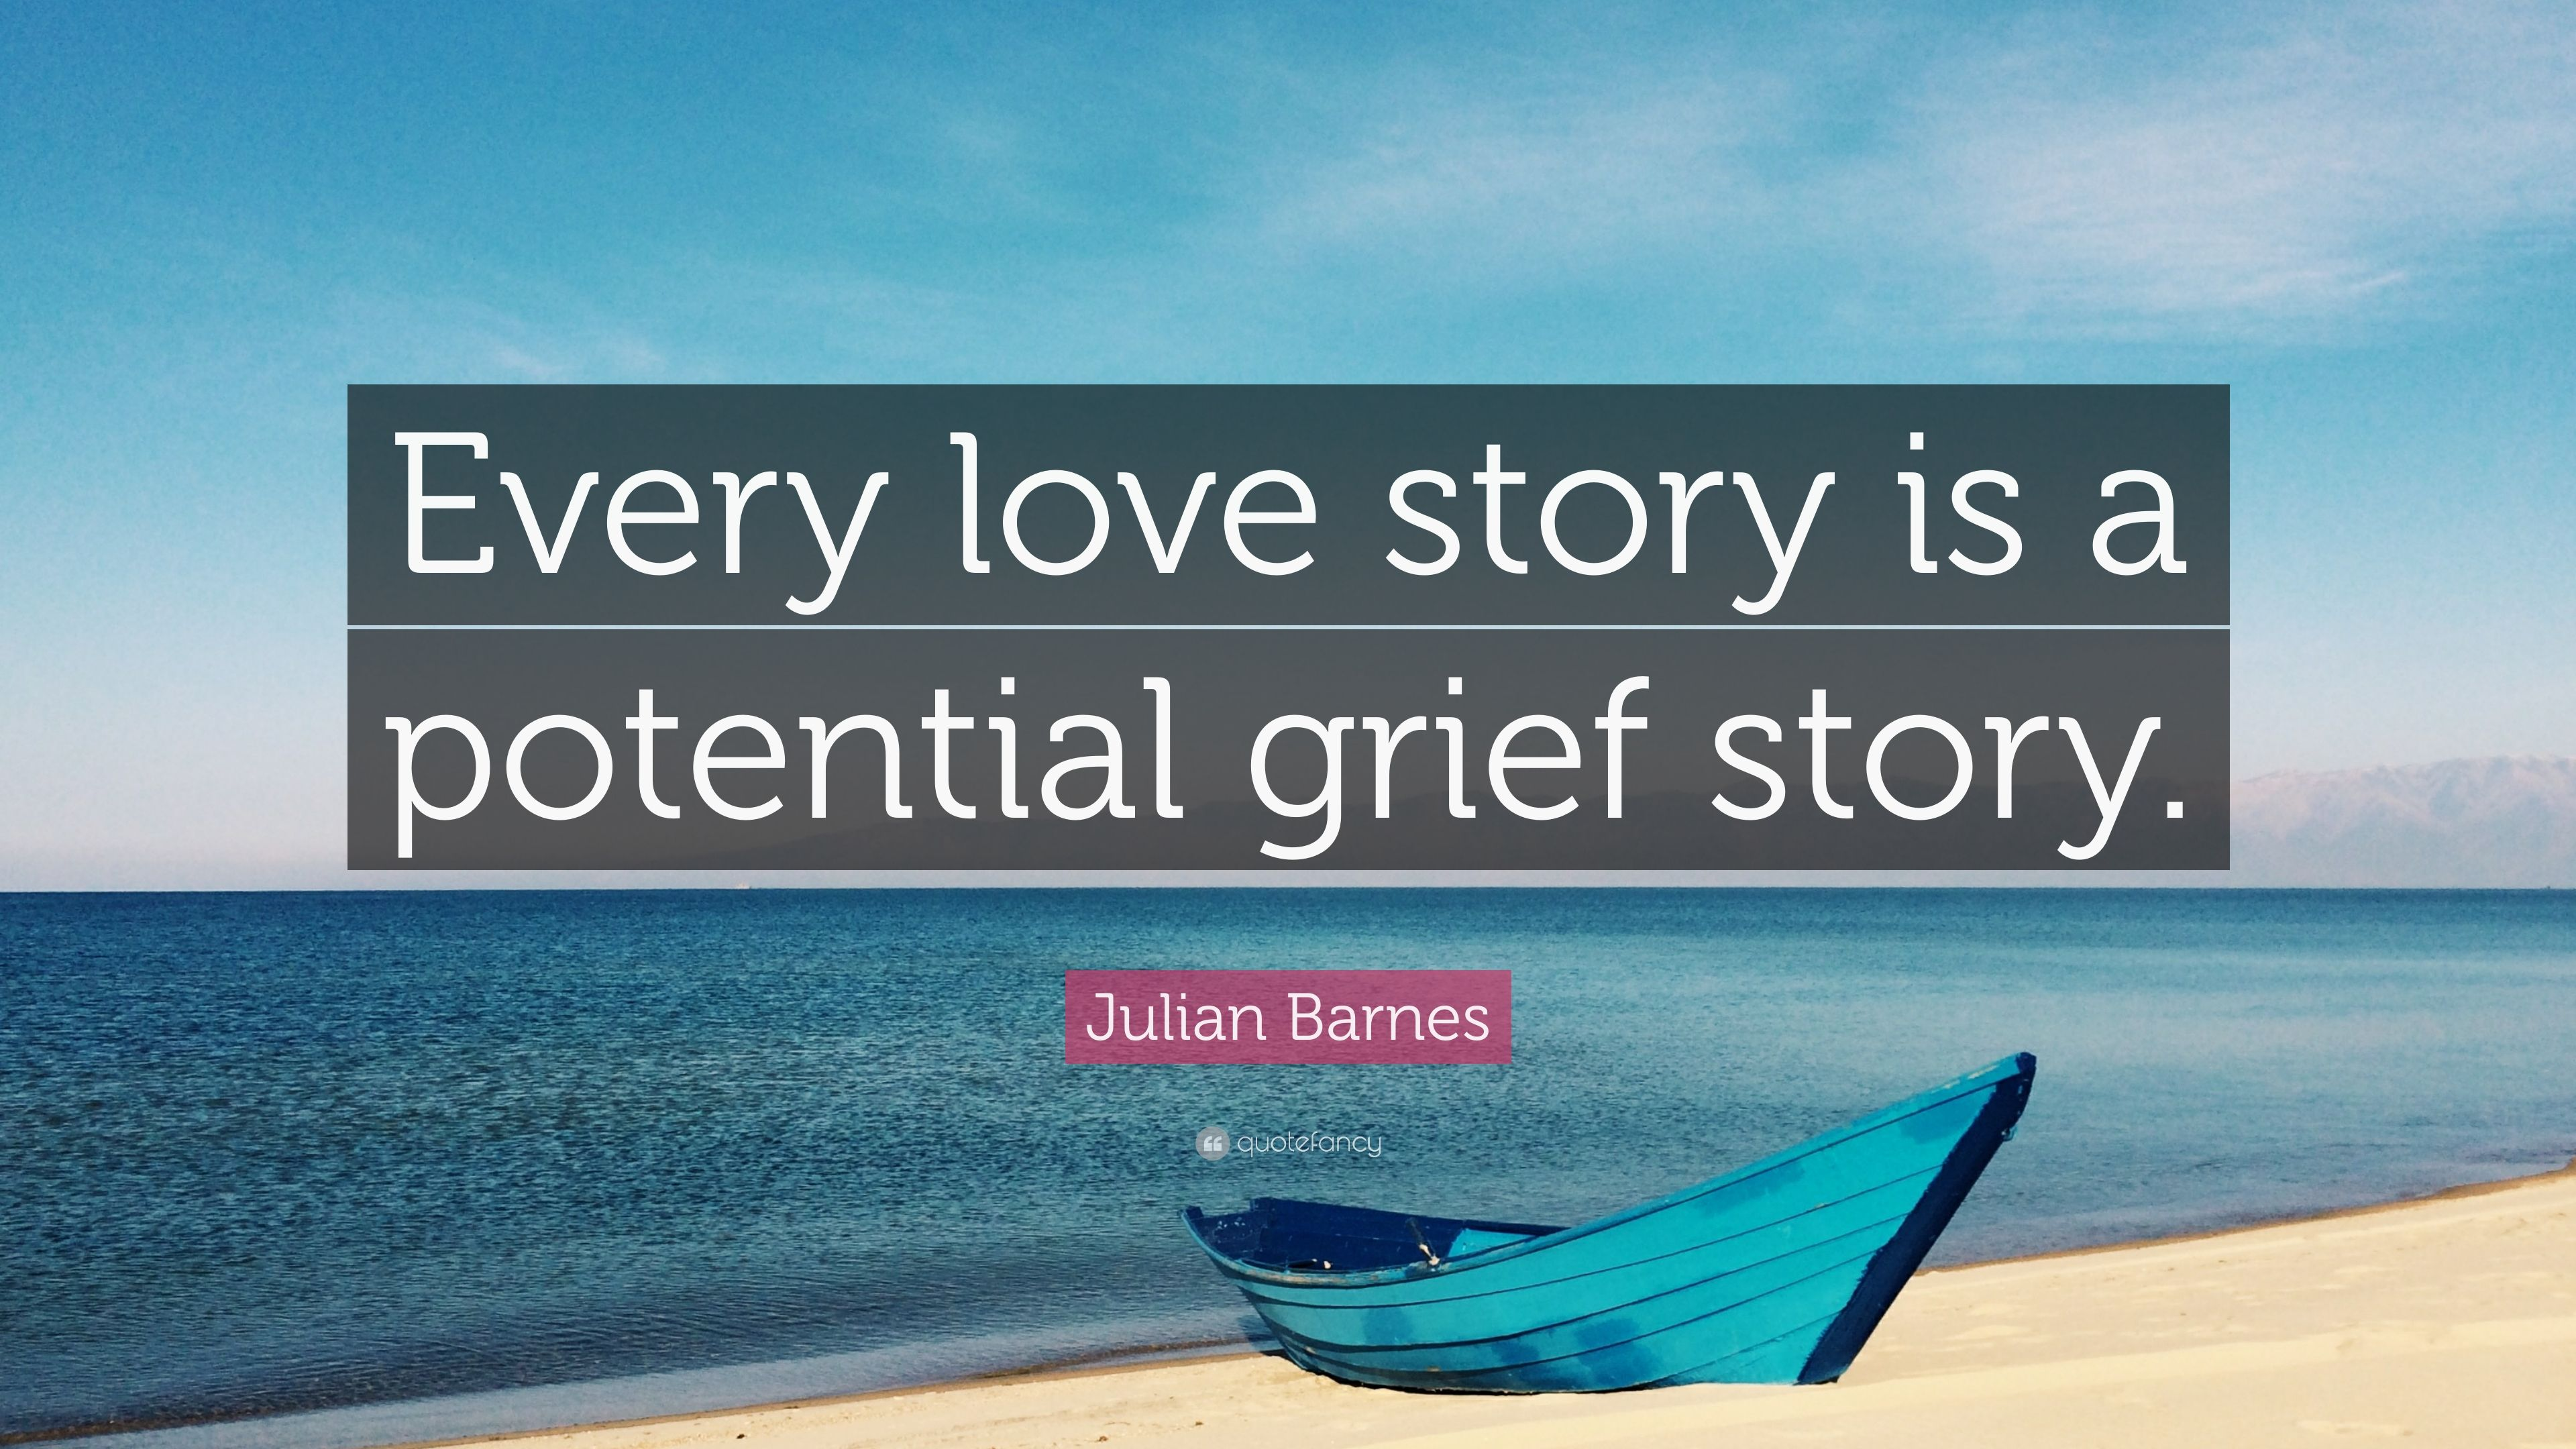 Julian Barnes Quote: U201cEvery Love Story Is A Potential Grief Story.u201d